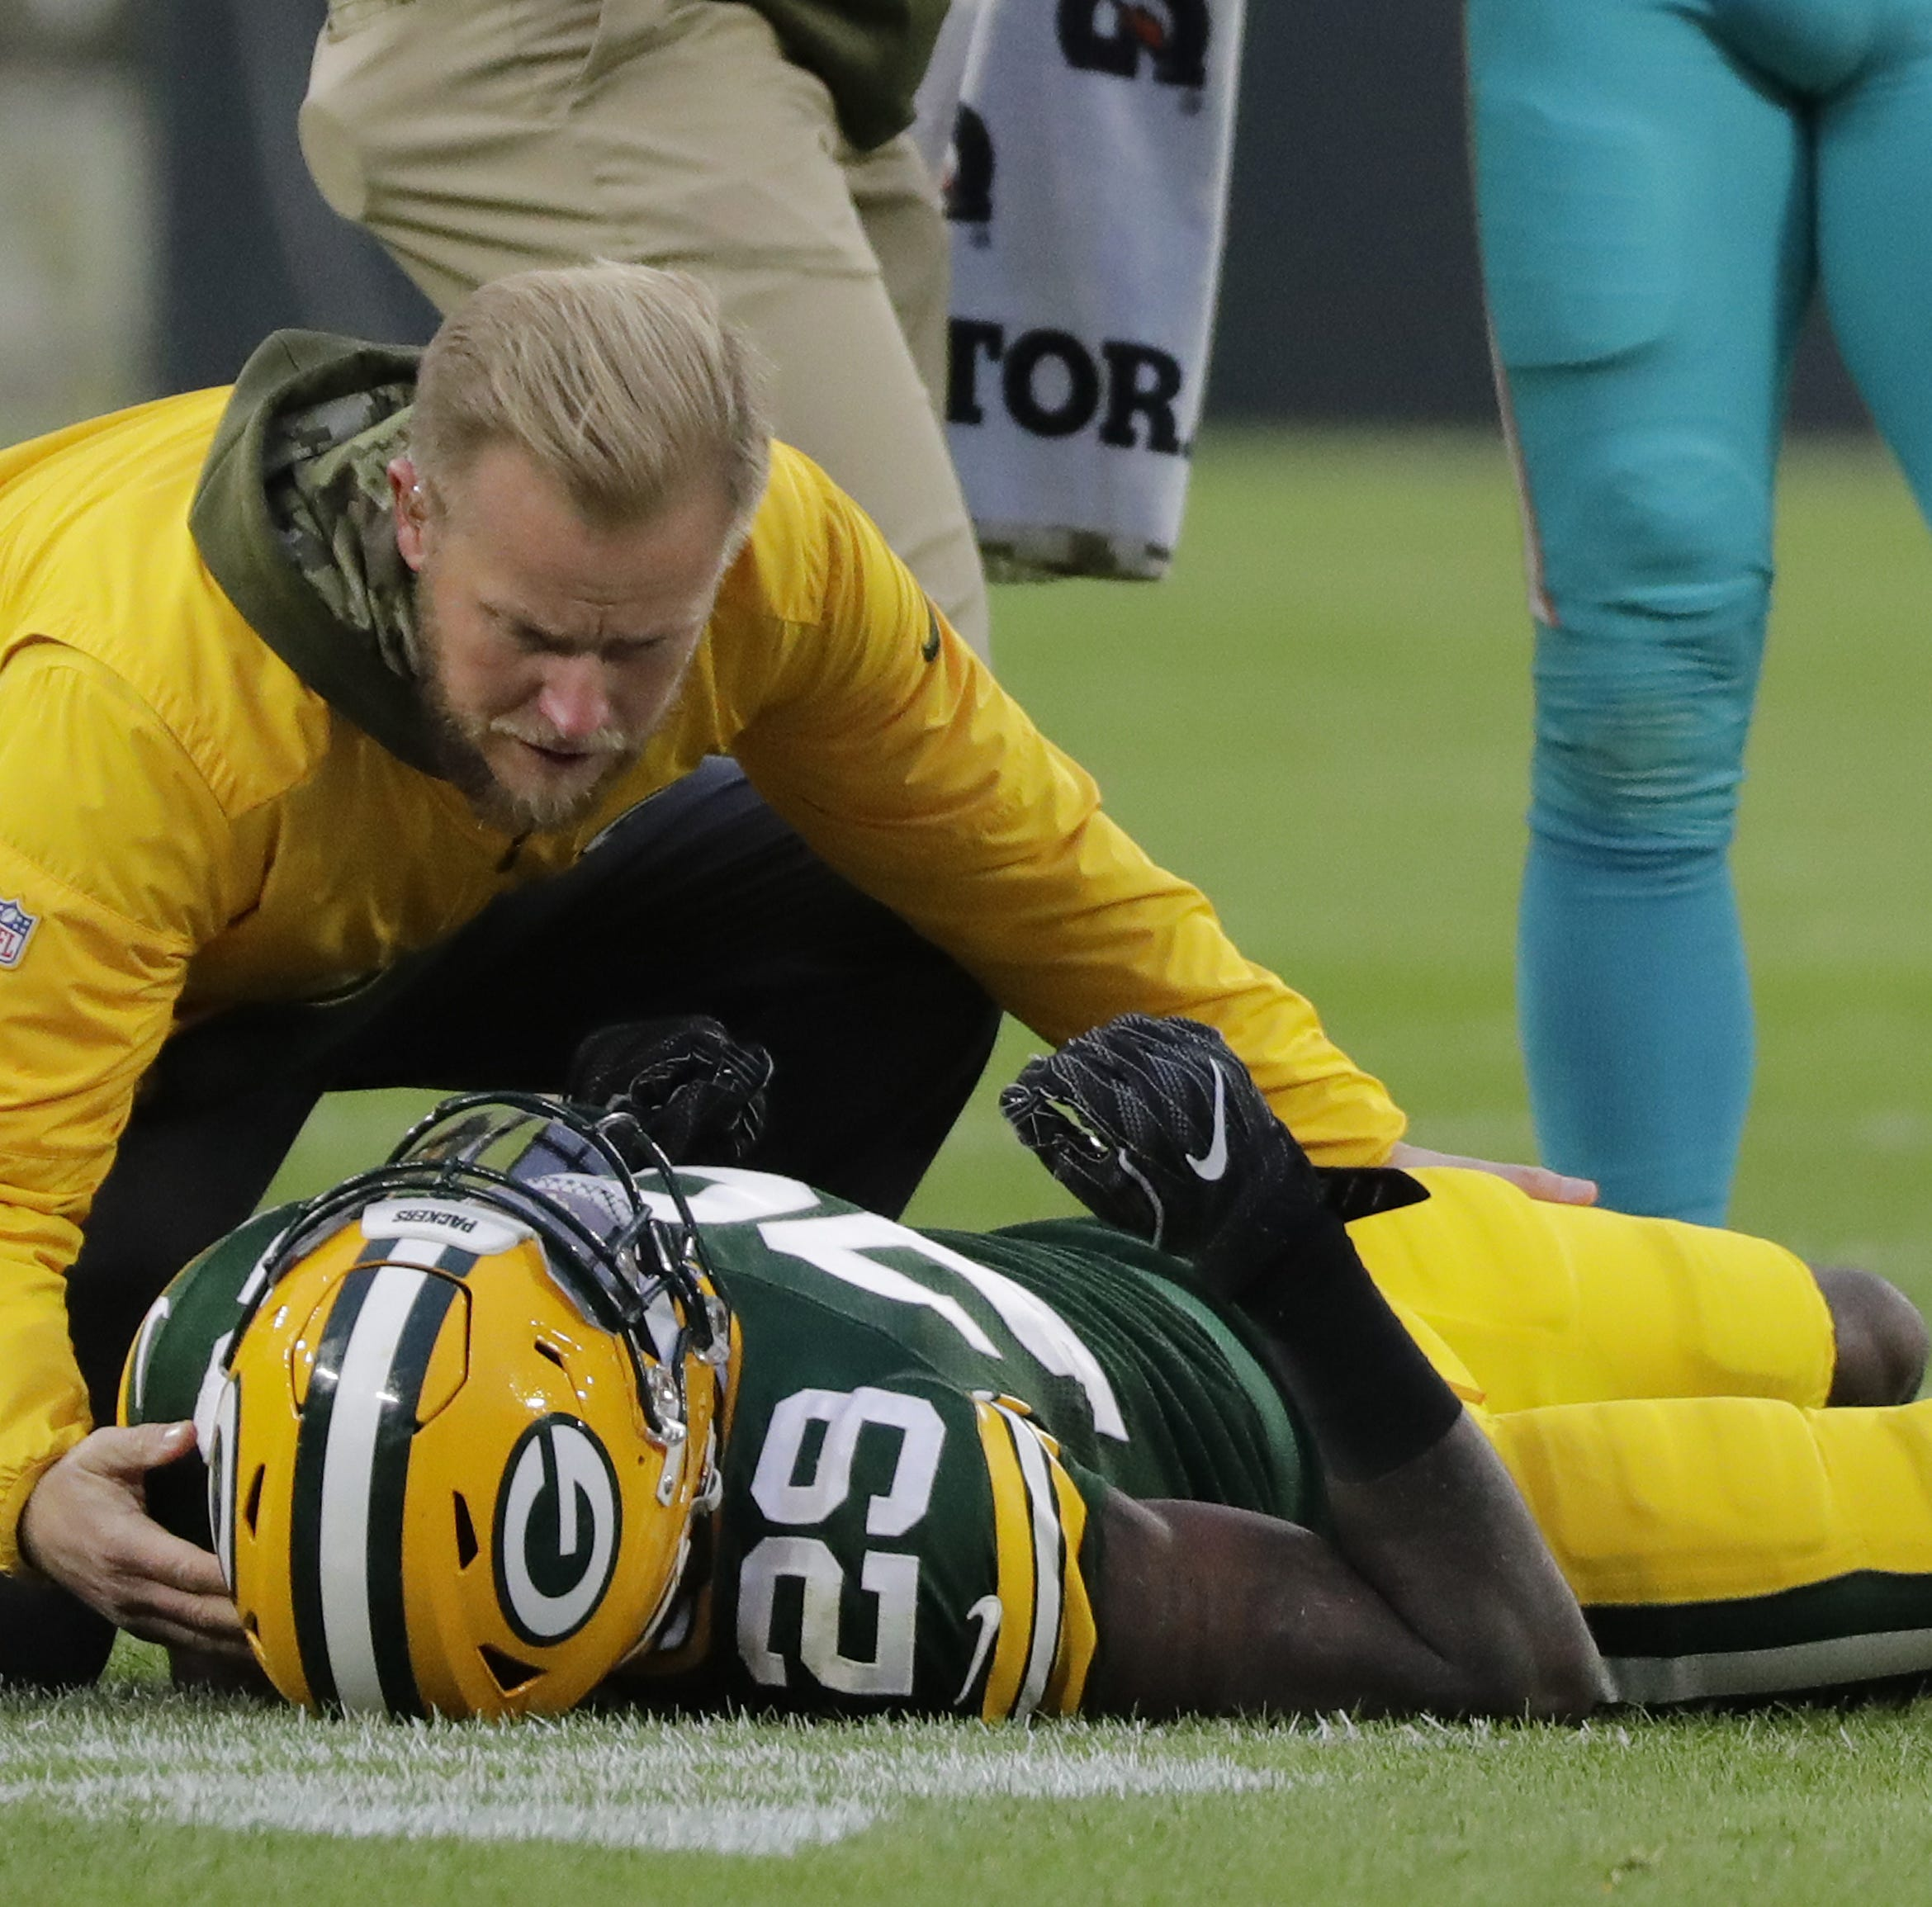 Green Bay Packers strong safety Kentrell Brice (29) lays injured on the field during the first half against the Miami Dolphins at Lambeau Field on Sunday, November 11, 2018 in Green Bay, Wis. Adam Wesley/USA TODAY NETWORK-Wisconsin